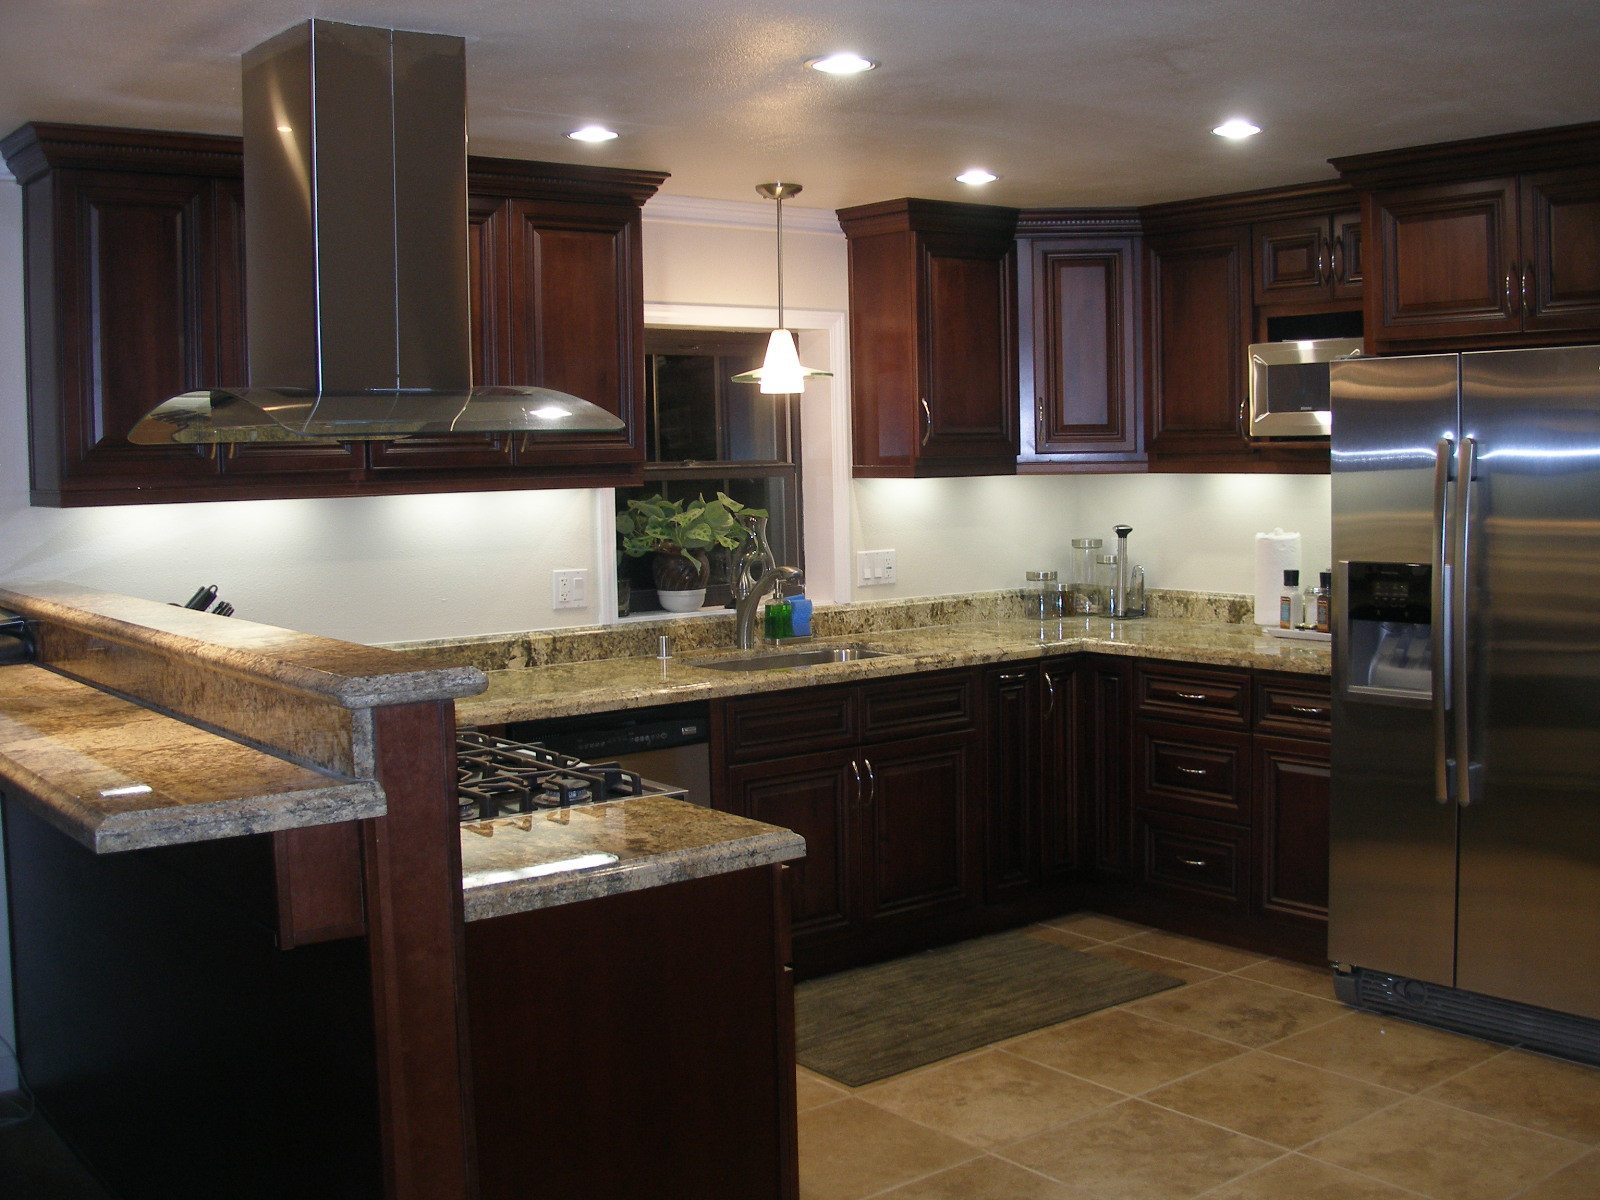 Best ideas about Remodeling Kitchen Ideas . Save or Pin Kitchen Remodeling Now.